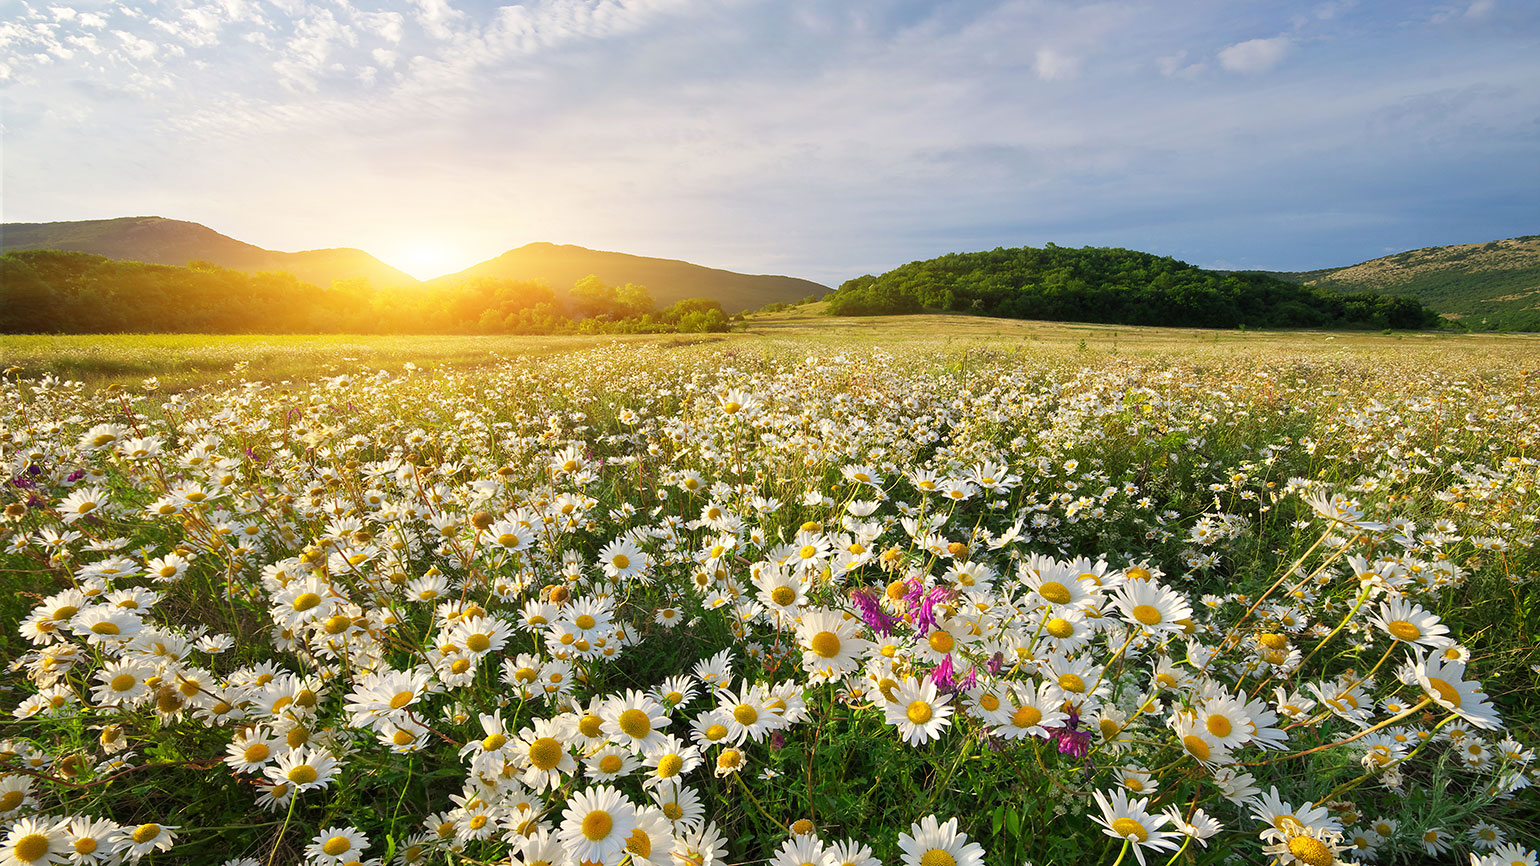 The sun rises over a field of spring flowers